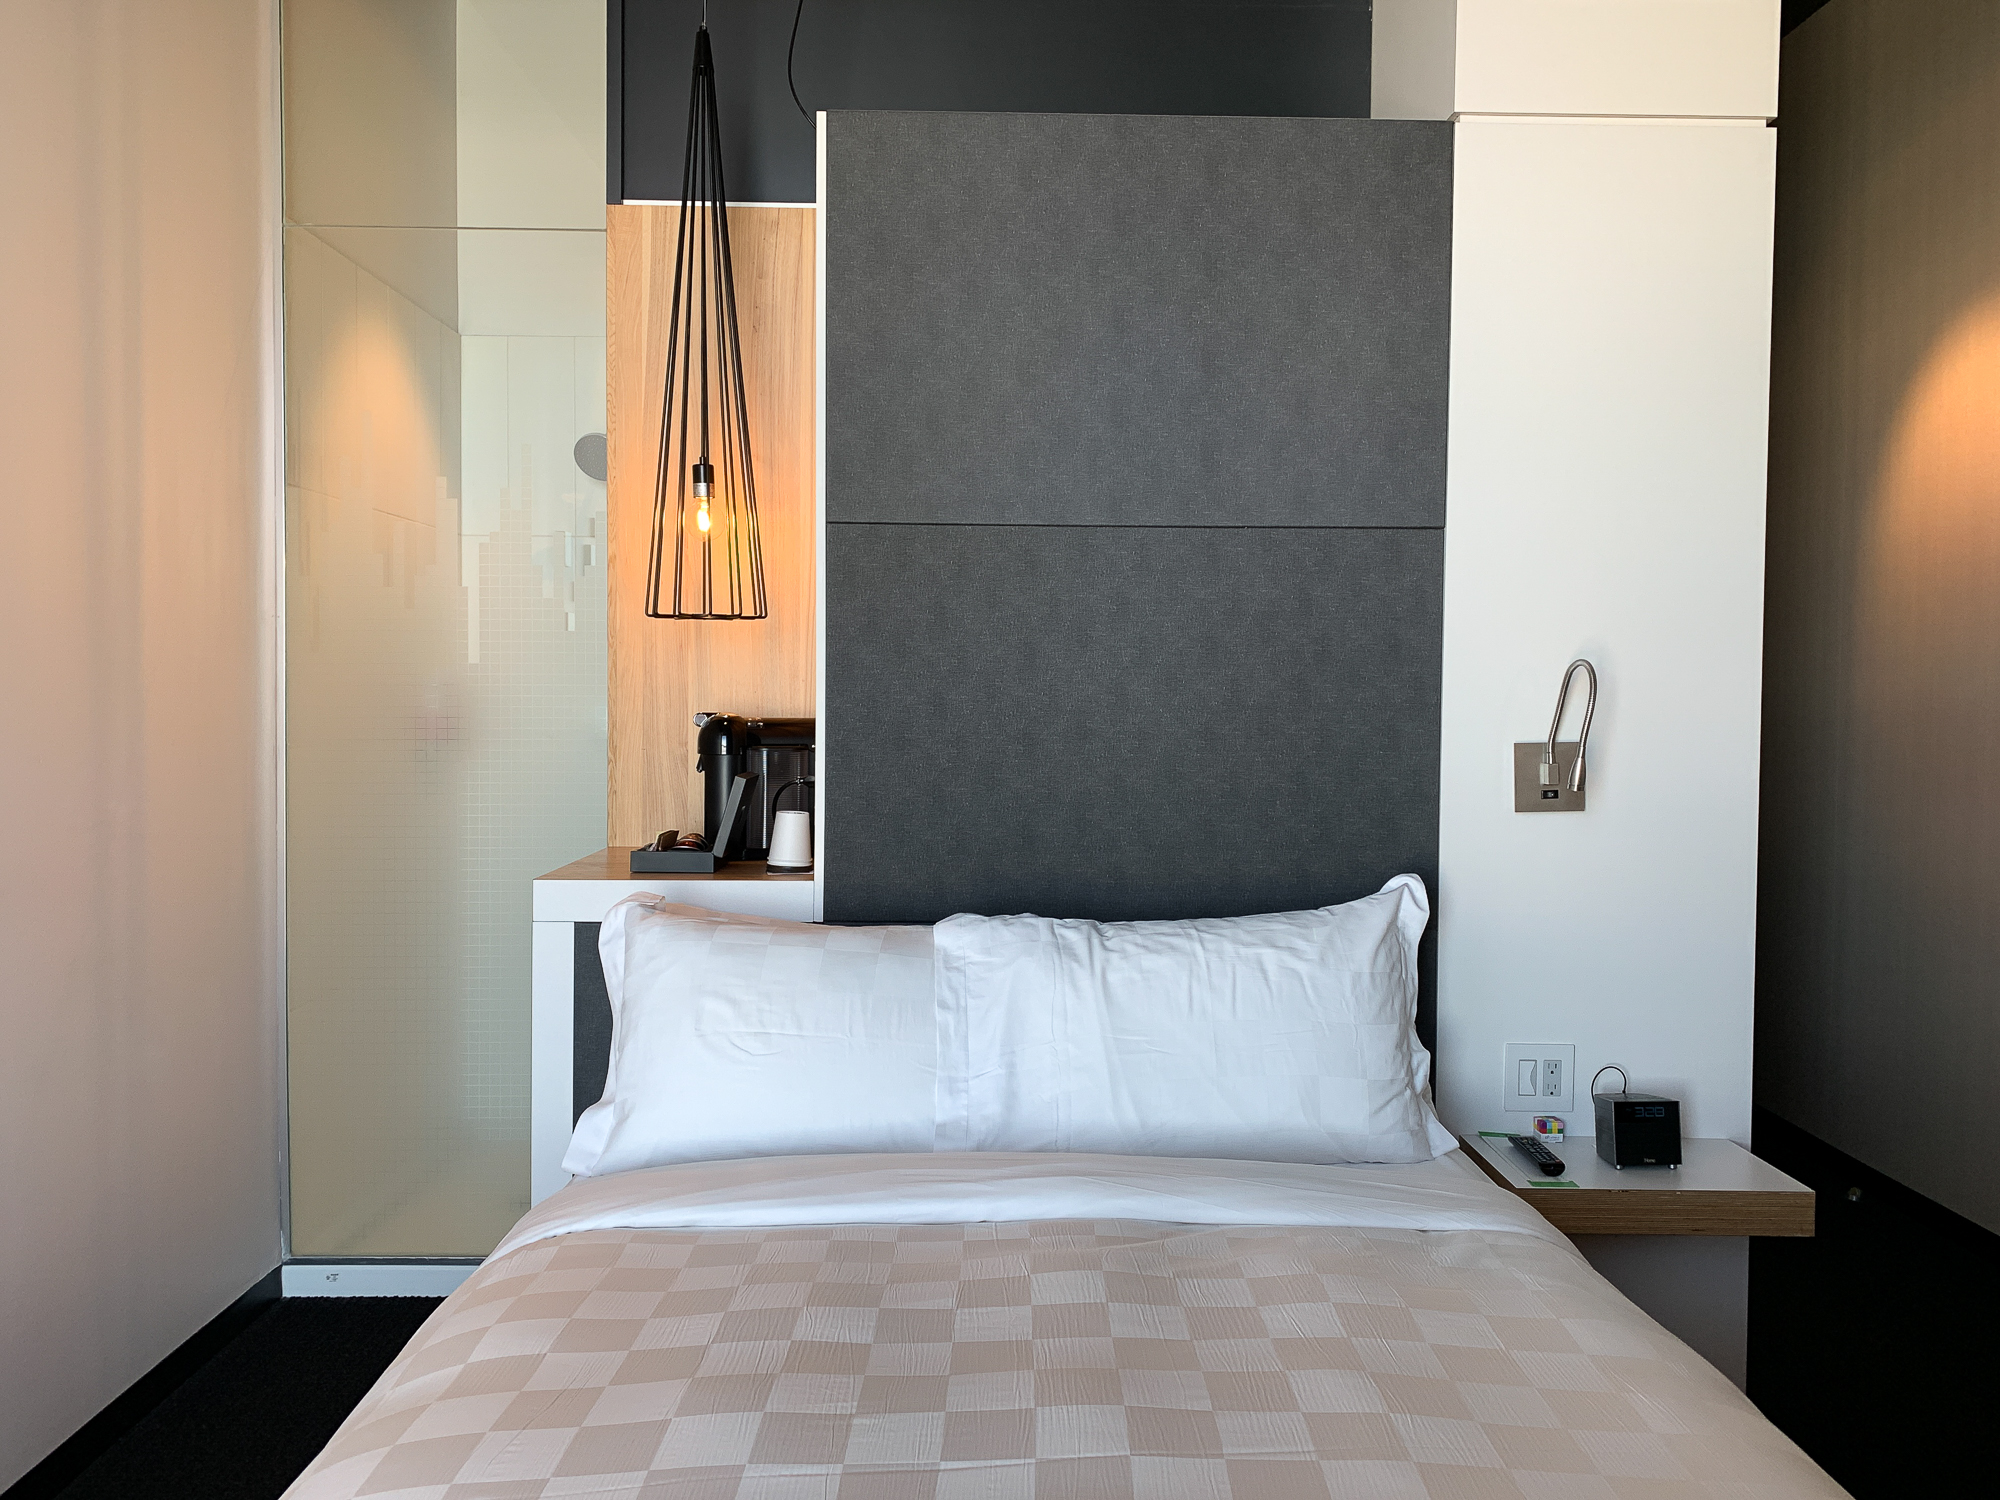 Chambre et lit au Alt Hotel Winnipeg dans le Exchange District